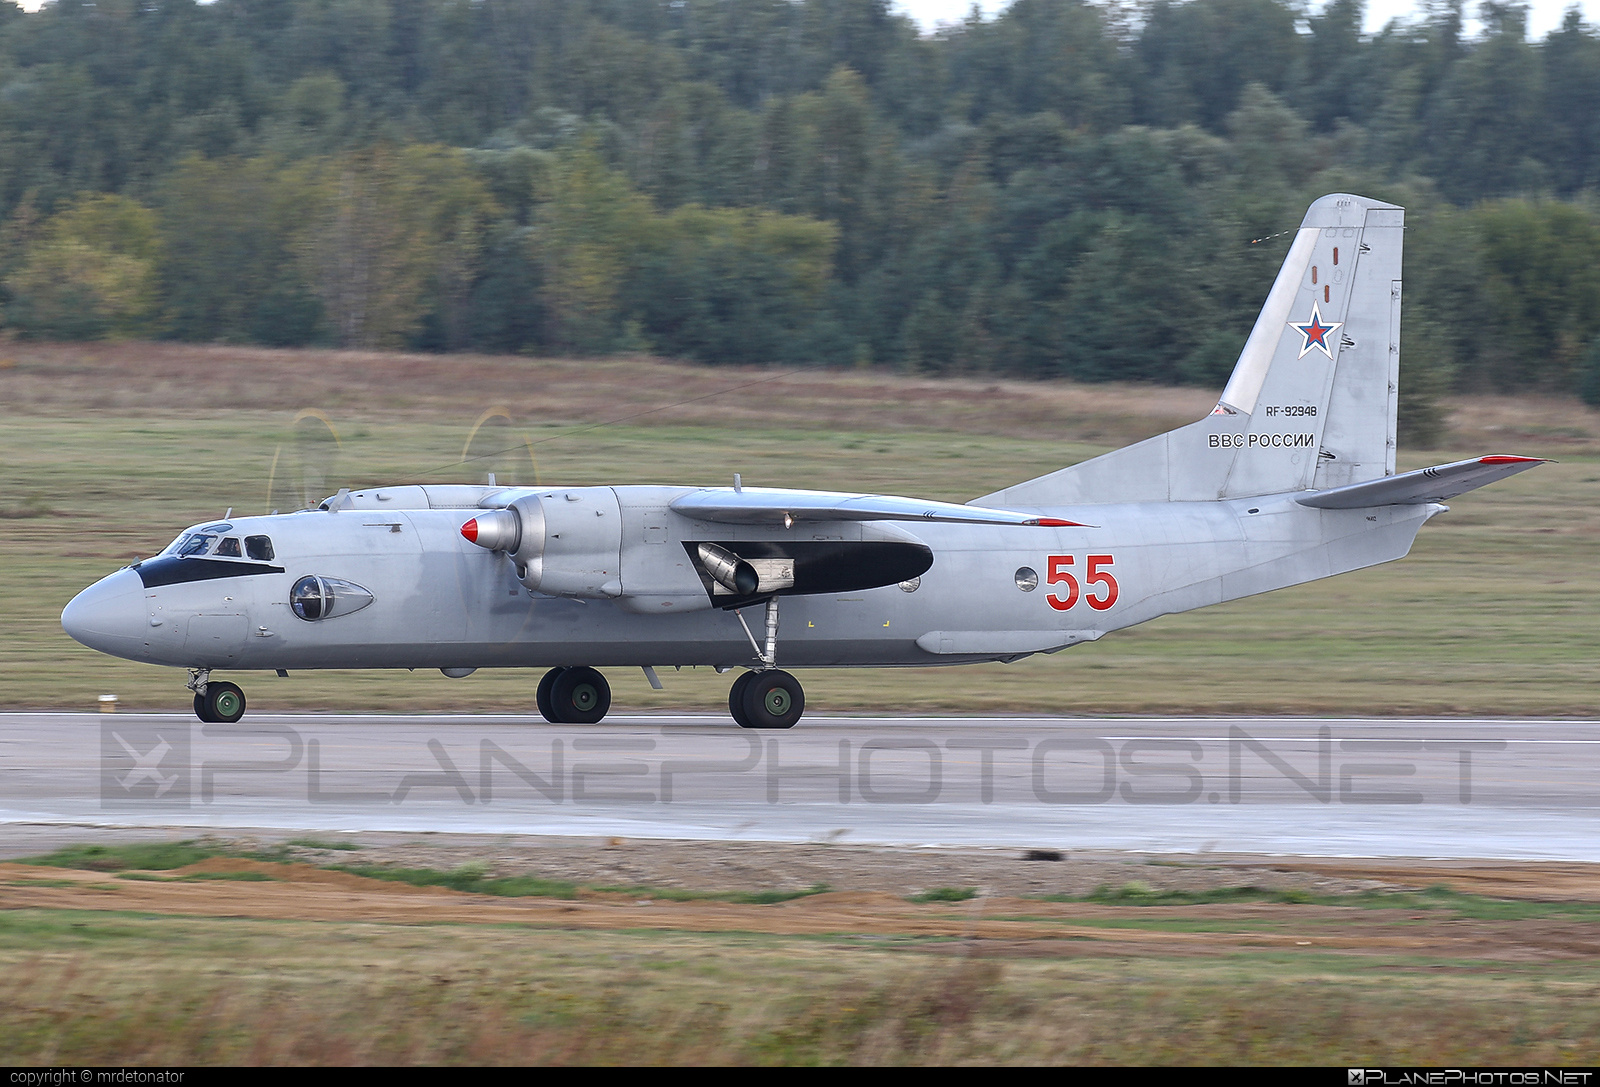 Antonov An-26 - RF-92948 operated by Voyenno-vozdushnye sily Rossii (Russian Air Force) #an26 #antonov #antonov26 #maks2015